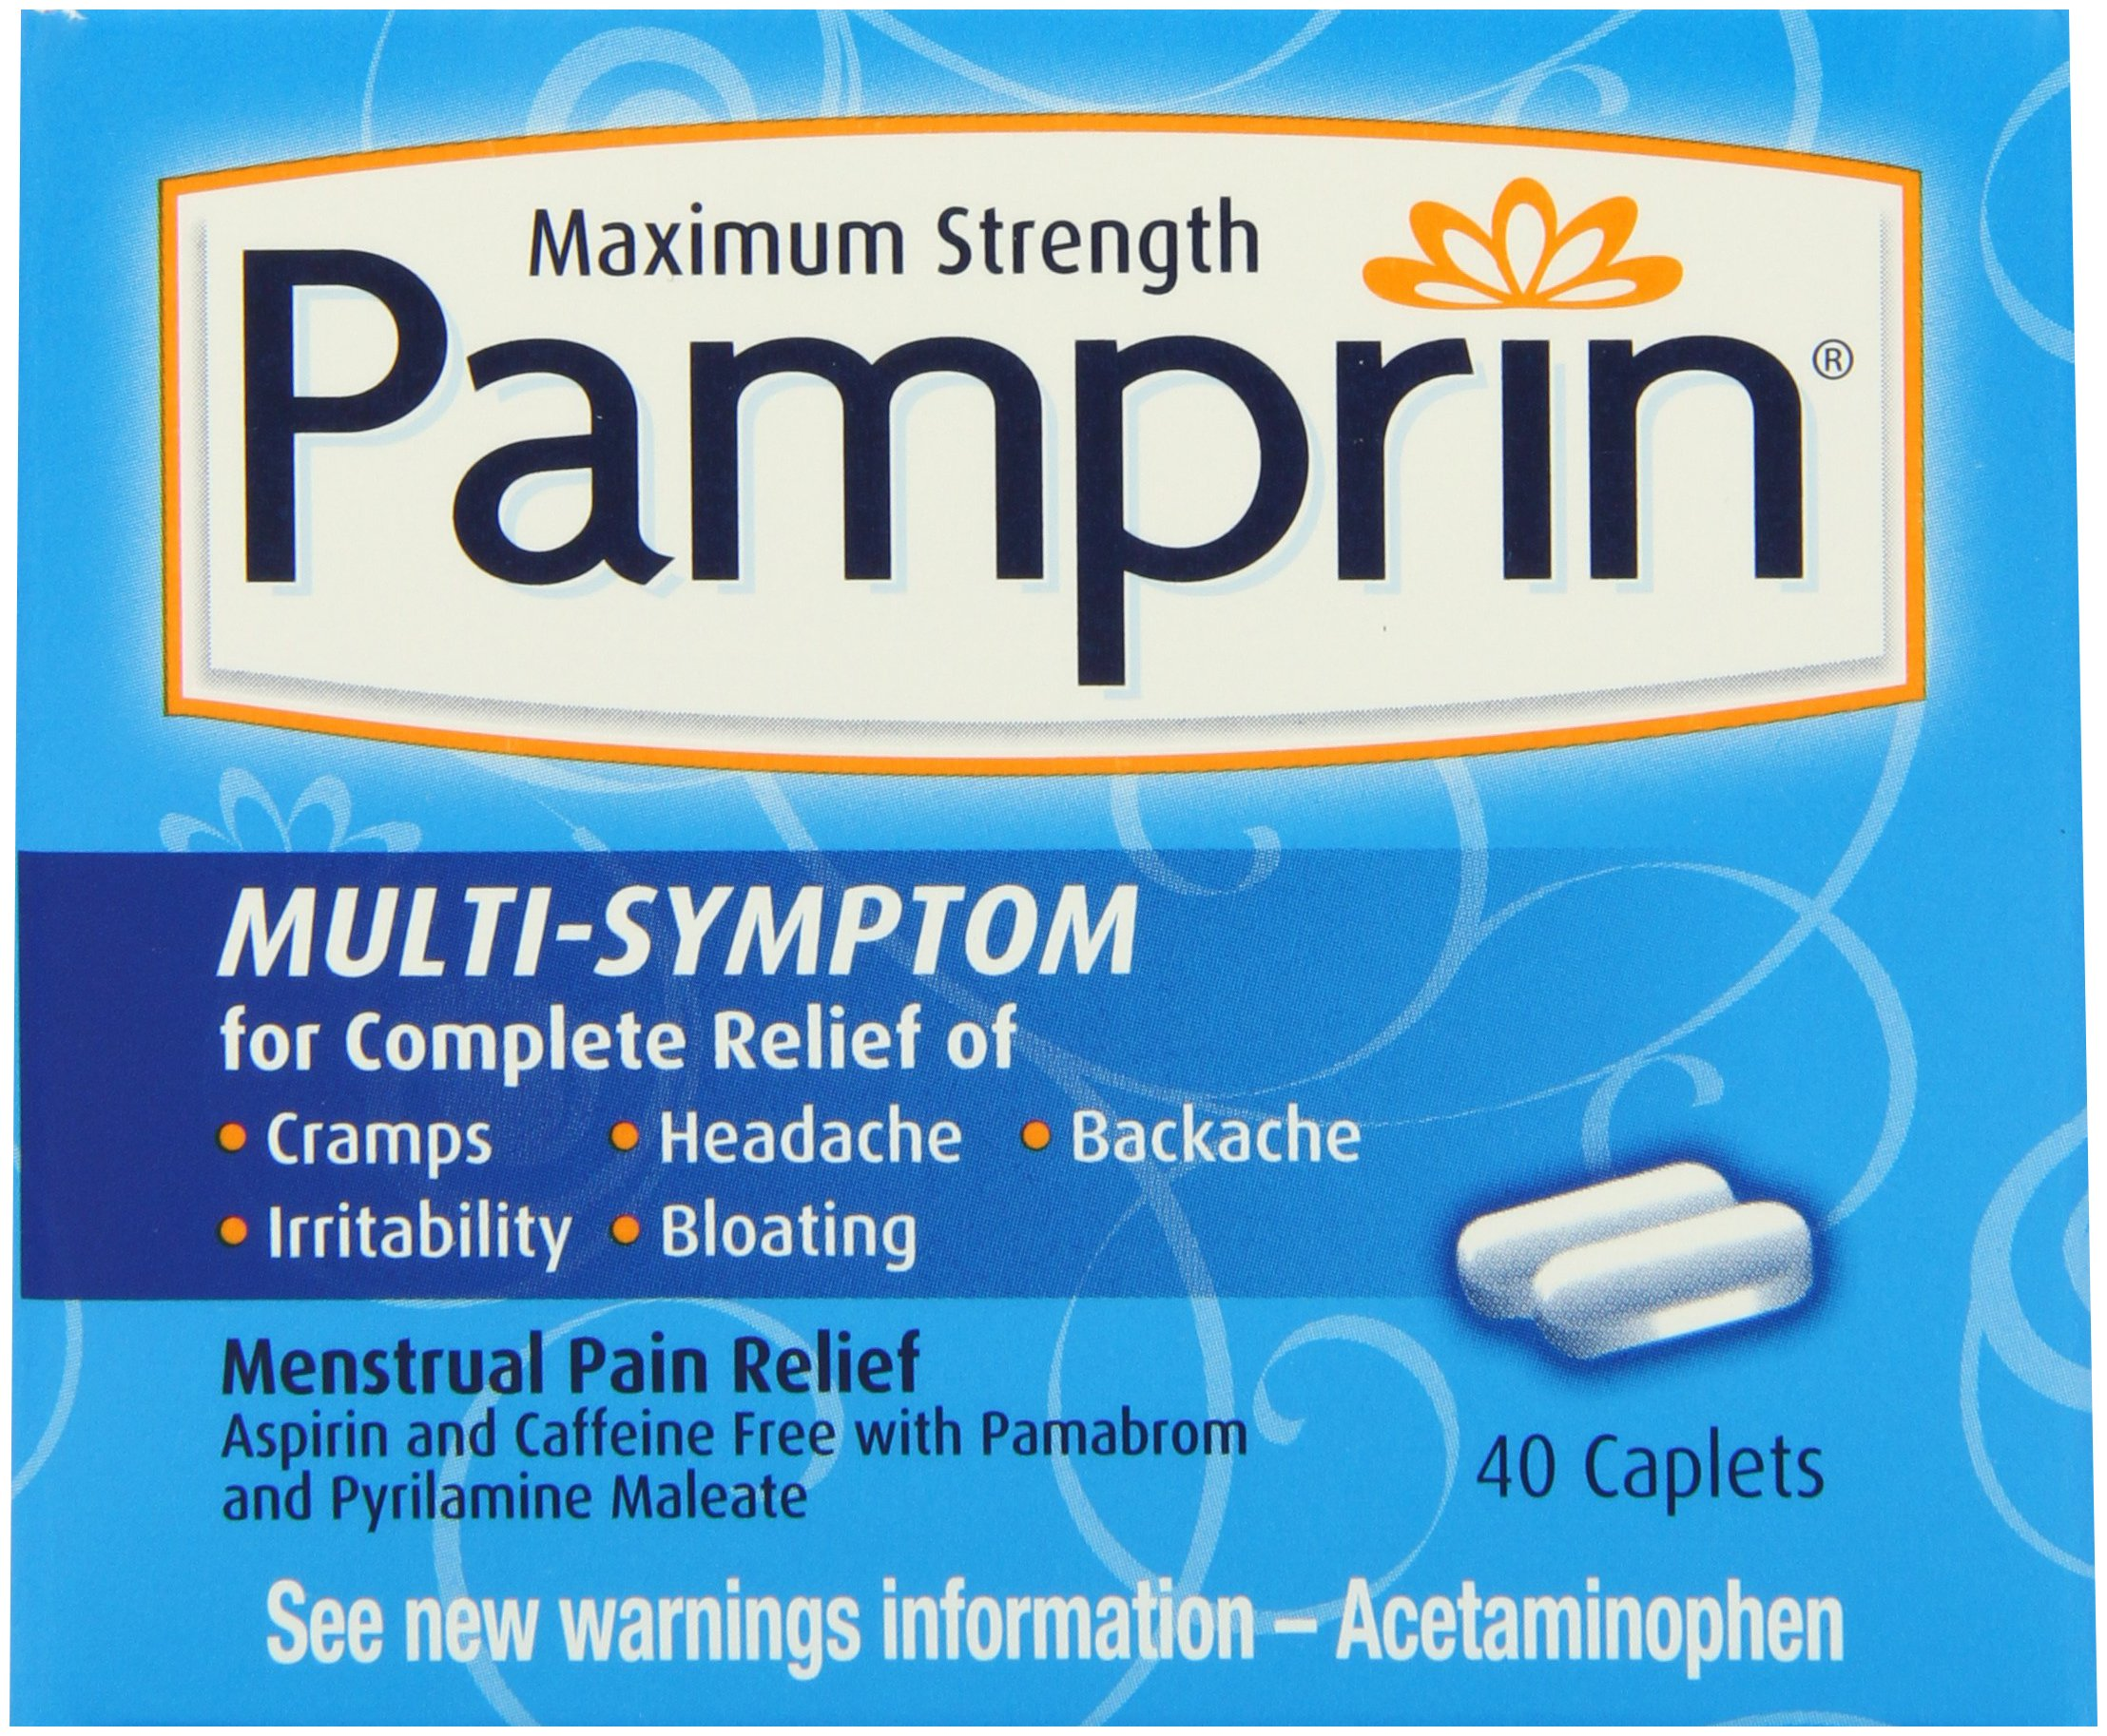 Pamprin Maximum Strength Multi-Symptom Menstrual Relief Tablets, 40-Count Boxes (Pack of 3) by Pamprin